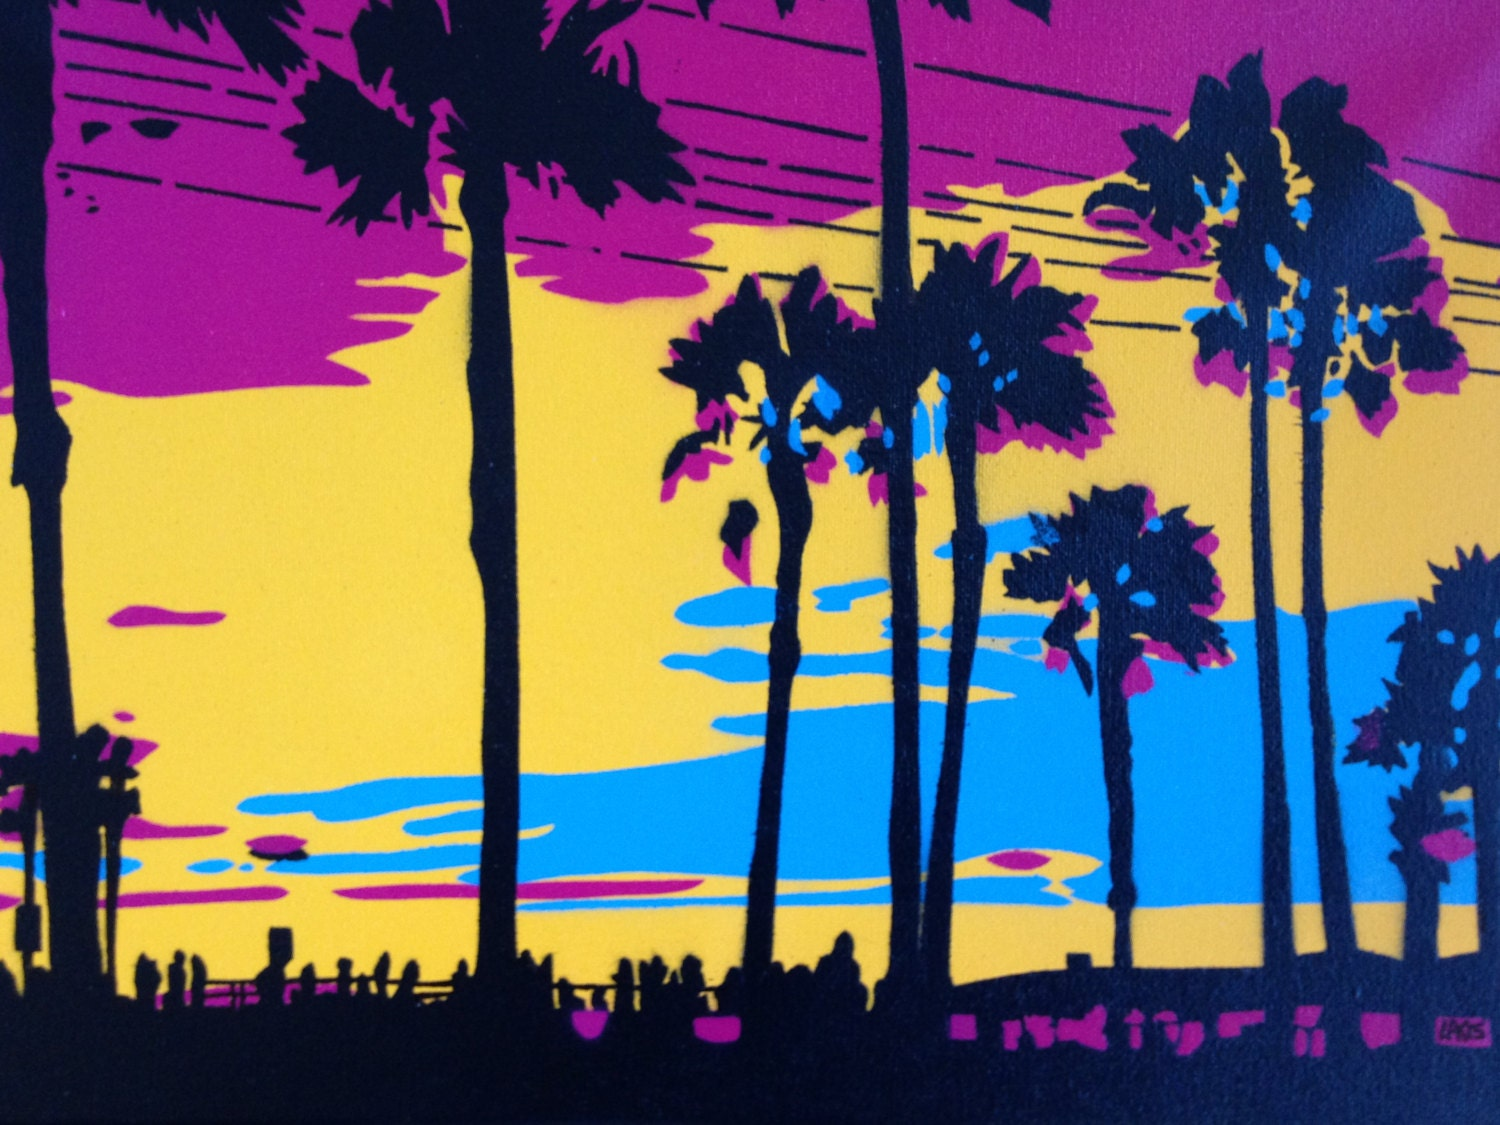 1 DIGITAL DOWNLOAD Sunset in Los Angeles stencil art canvas | Etsy